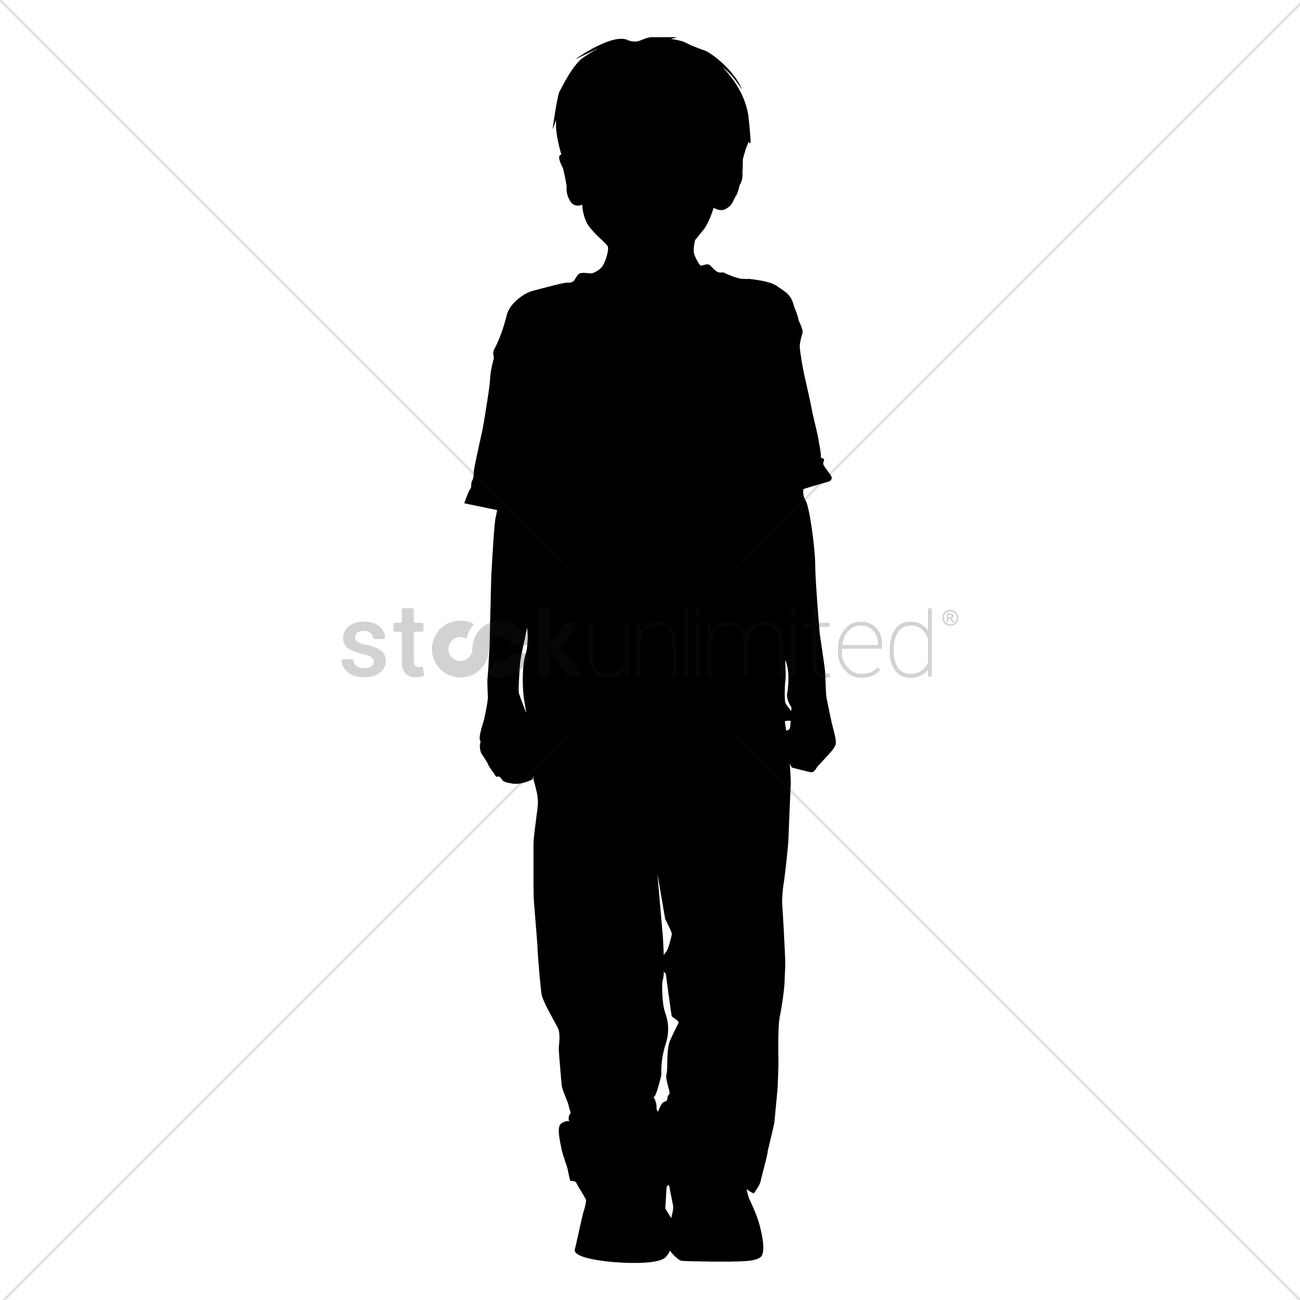 Silhouette clipart boy 3 » Clipart Station.